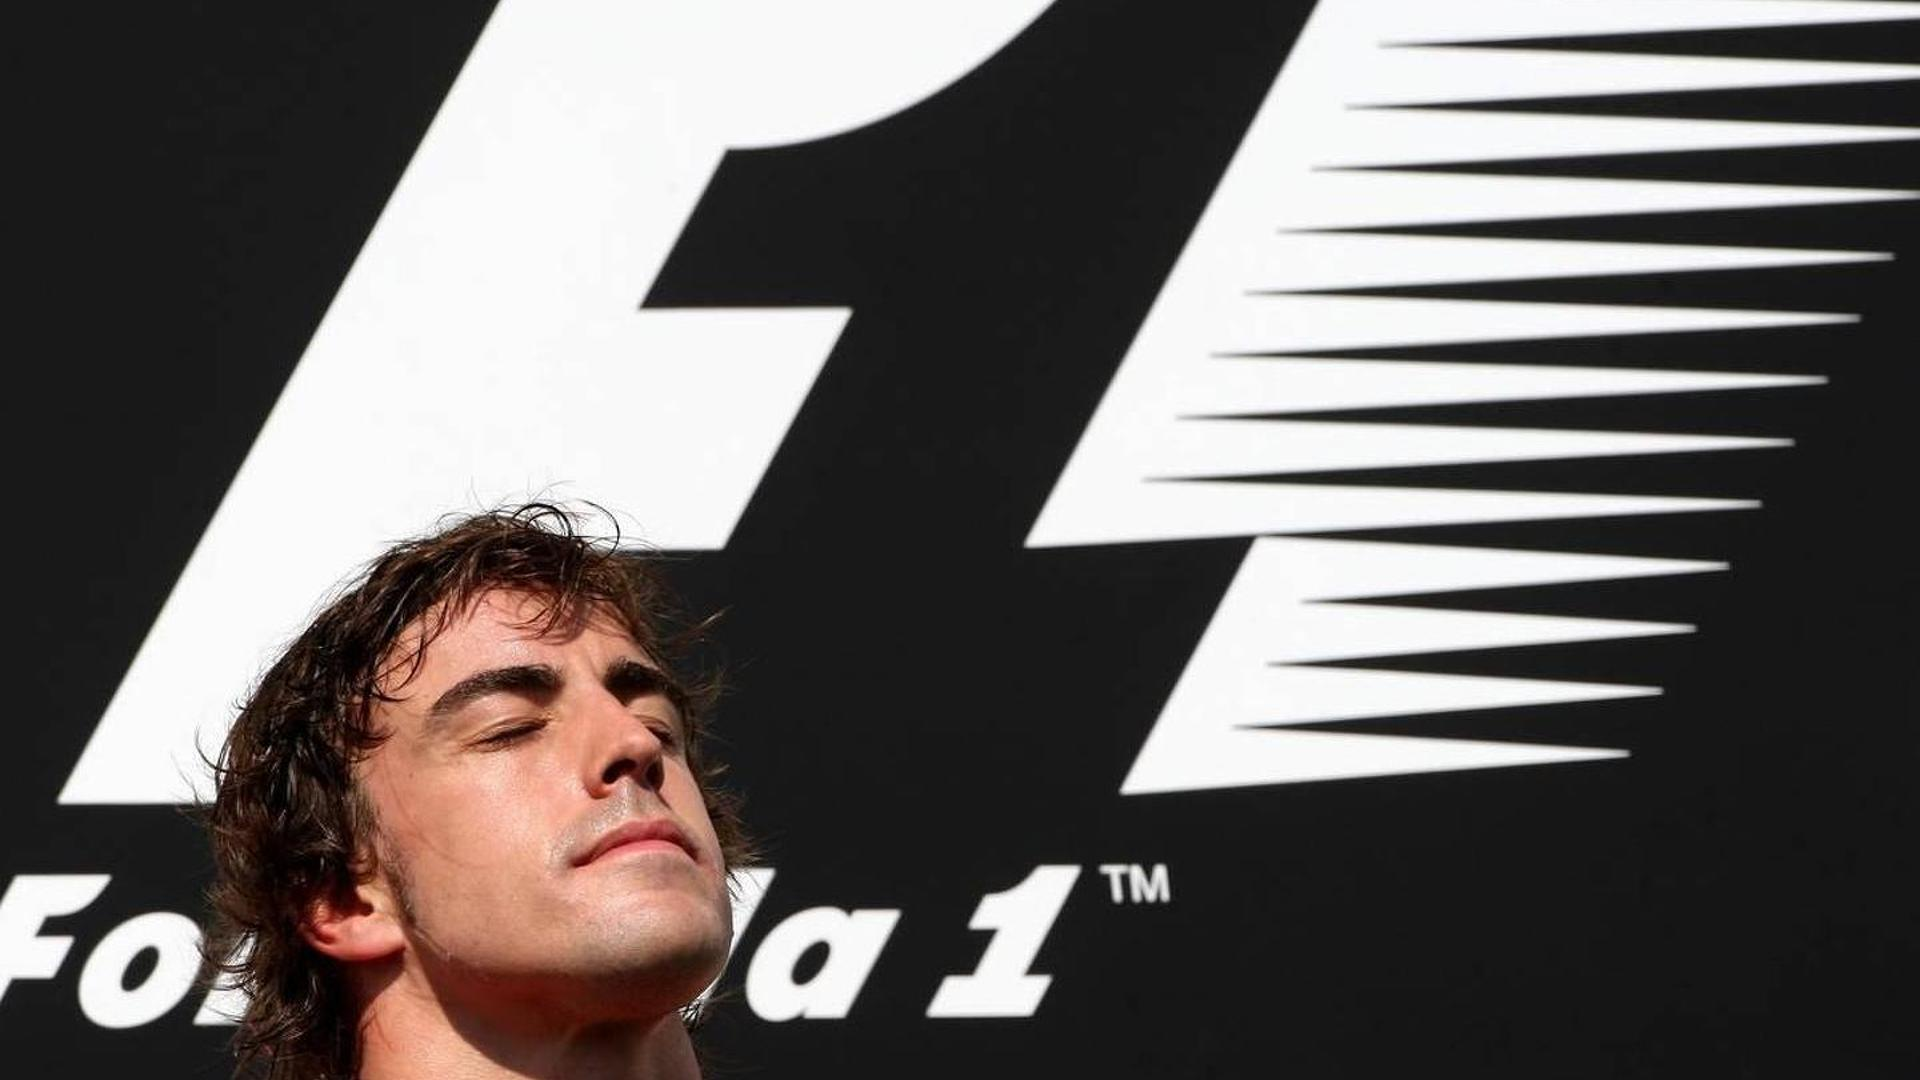 'Best driver' Alonso will win 2010 title - Lauda